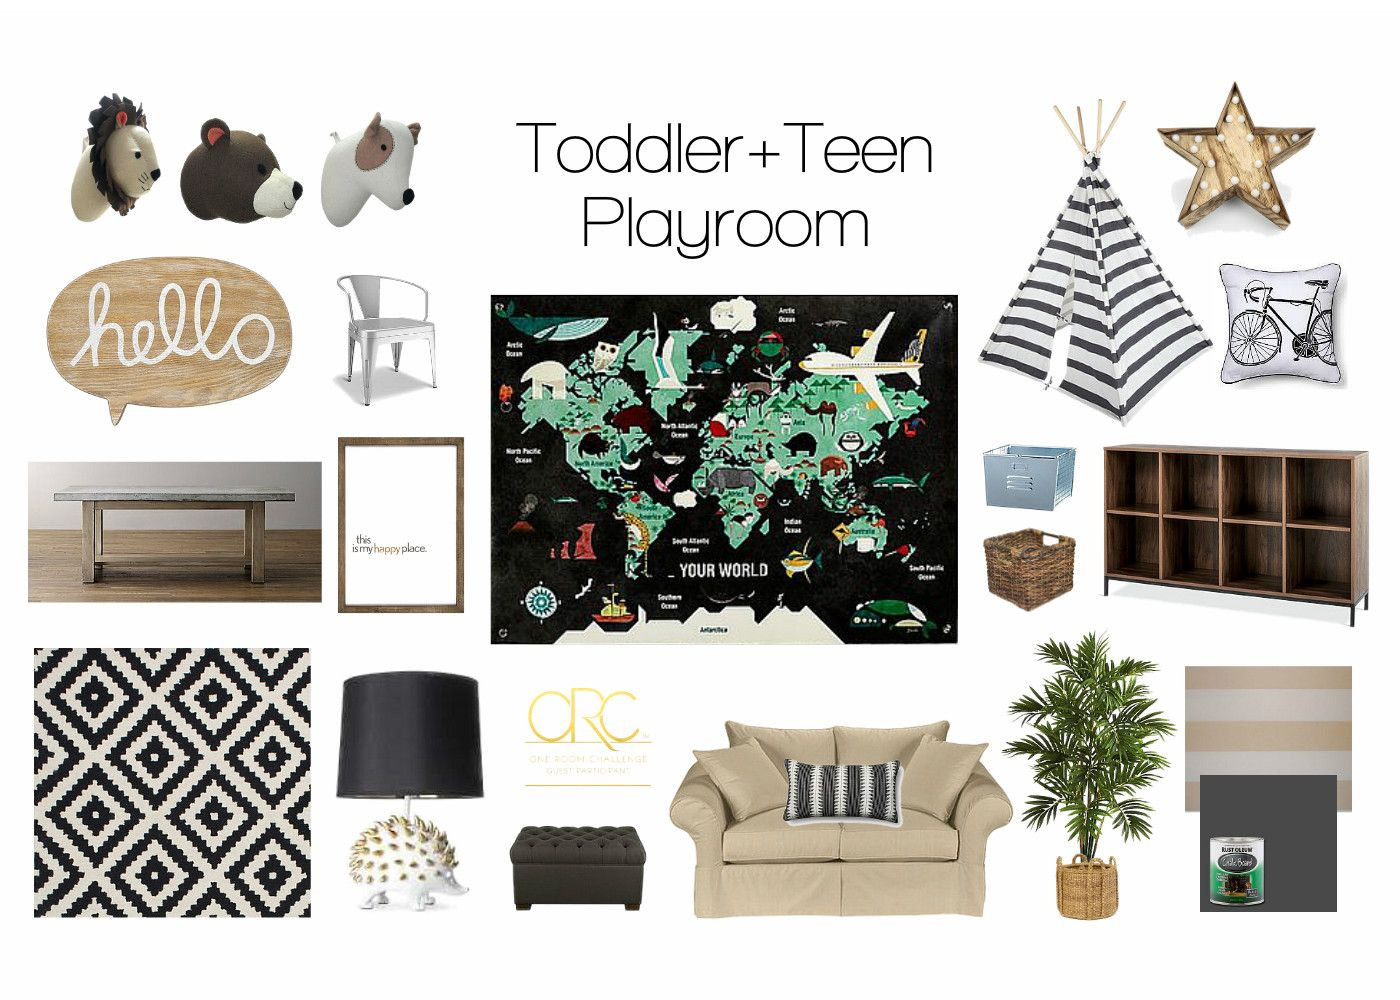 Toddler teen playroom on the blog target stuffed animal heads target stuffed animal heads hello sign wayfair black white rug land of nod world map hedgehog lamp nate burkes gray cocktail ottoman gumiabroncs Images